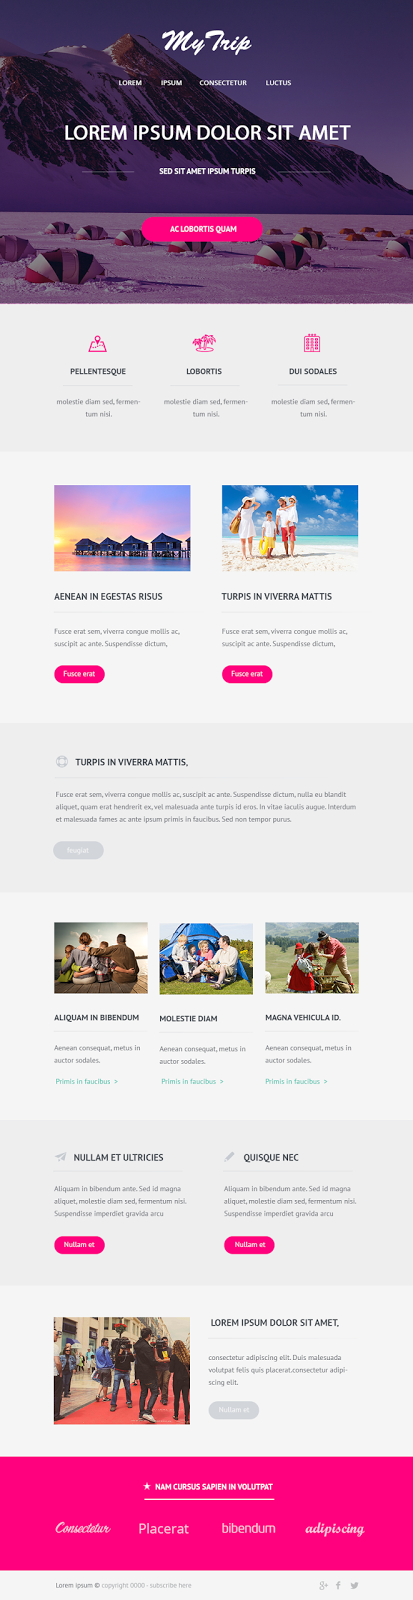 MyTrip Website UI Design Templates